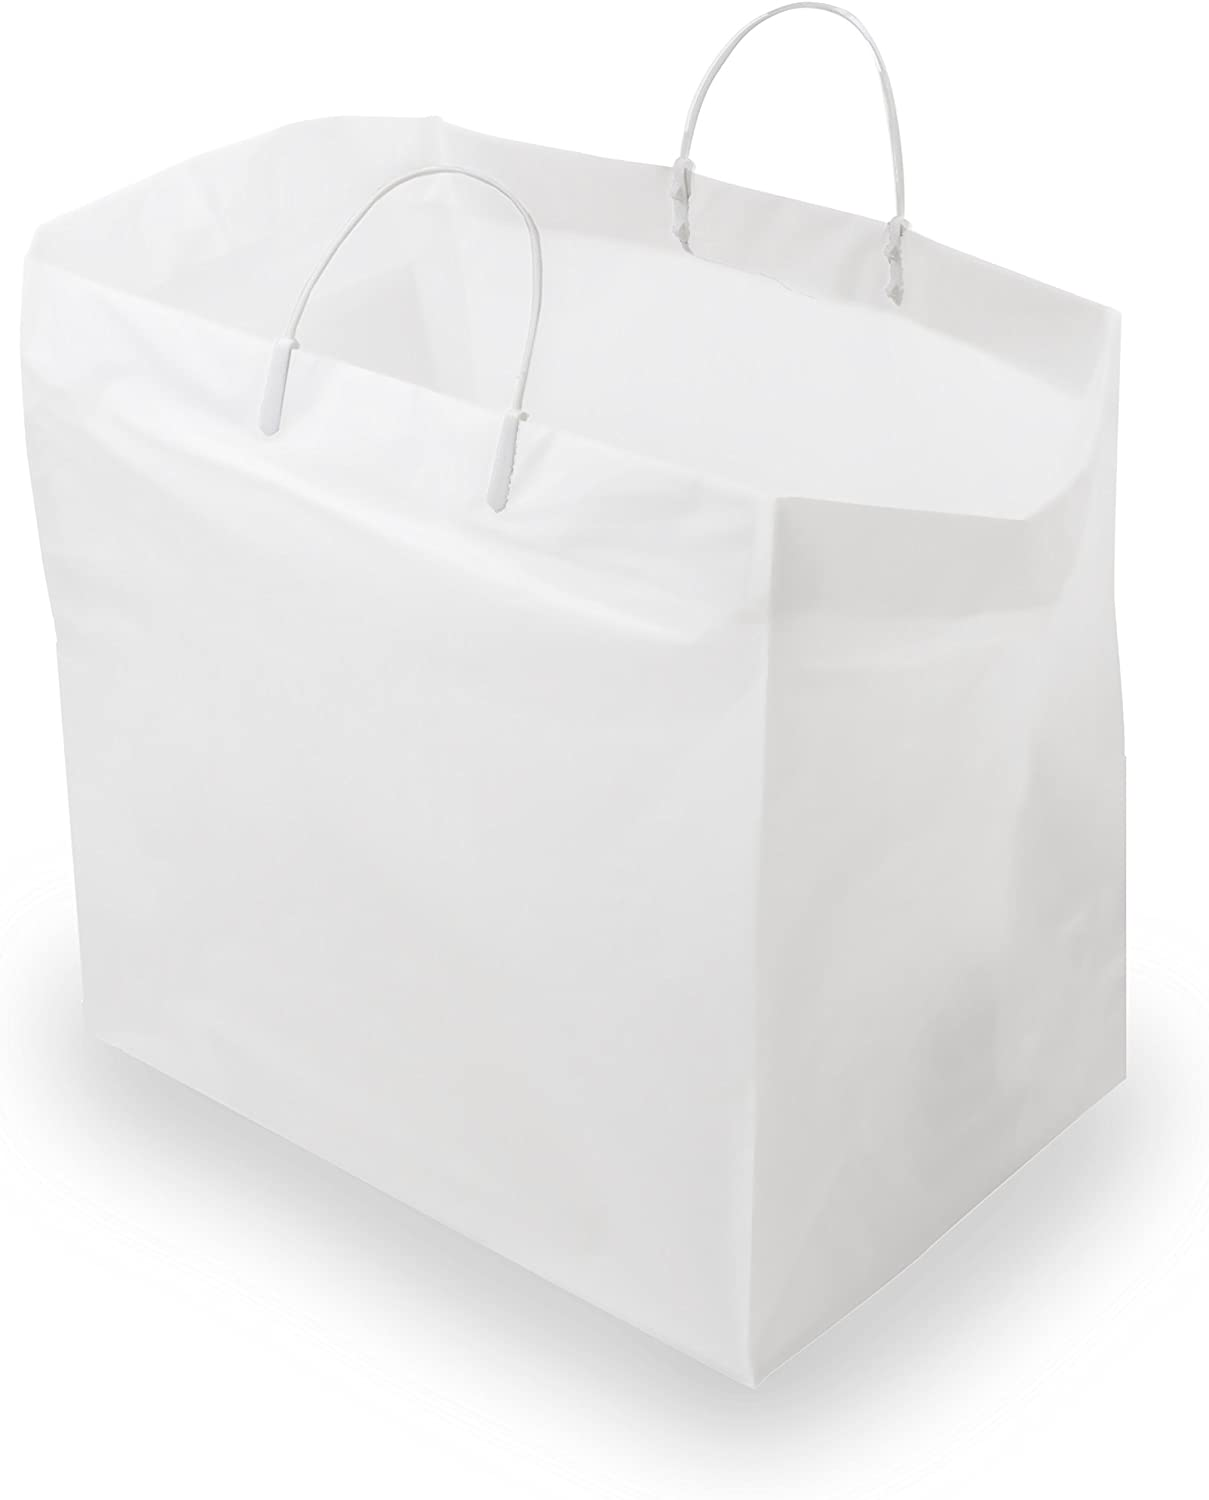 Thick White Plastic Shopping Bags With Handles & Cardboard Bottom, Merchandise Bags, Food Service Bags, Take Out Bags, Gift Bags Bulk (14x10x14.75 200 Pcs)